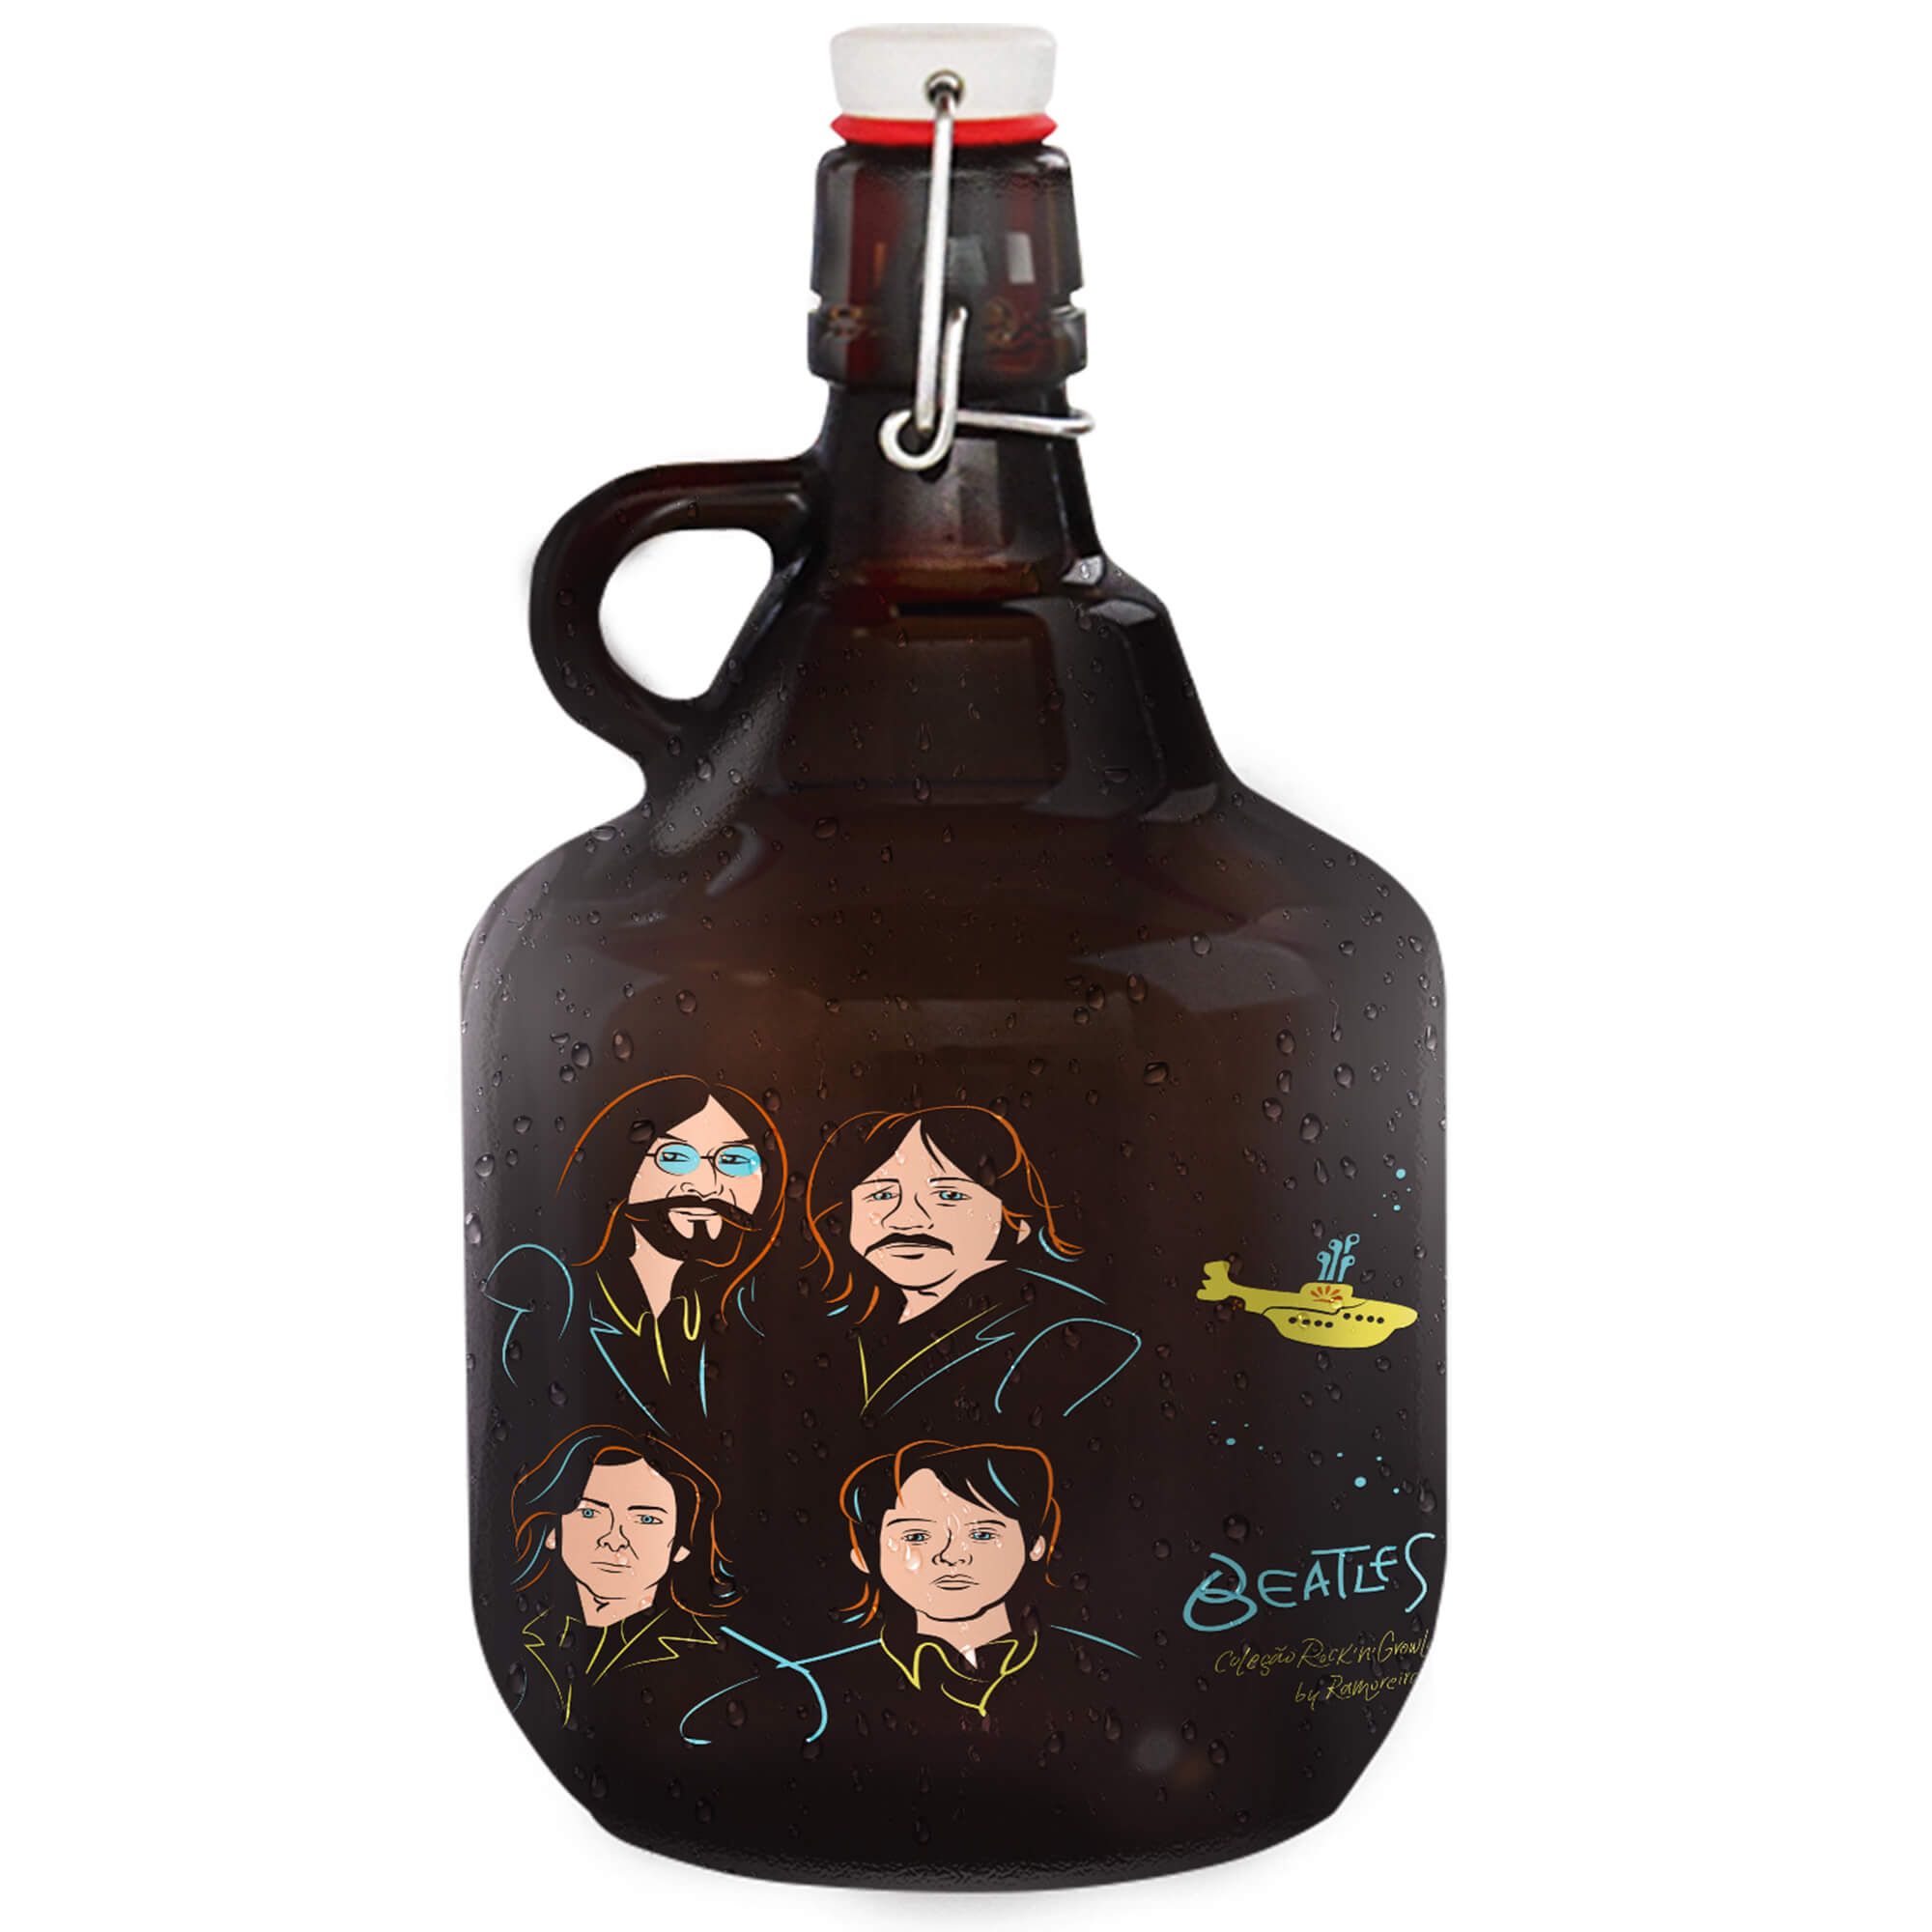 Grand Growler 2l - Coleção Rock'n'Growler - Beatles